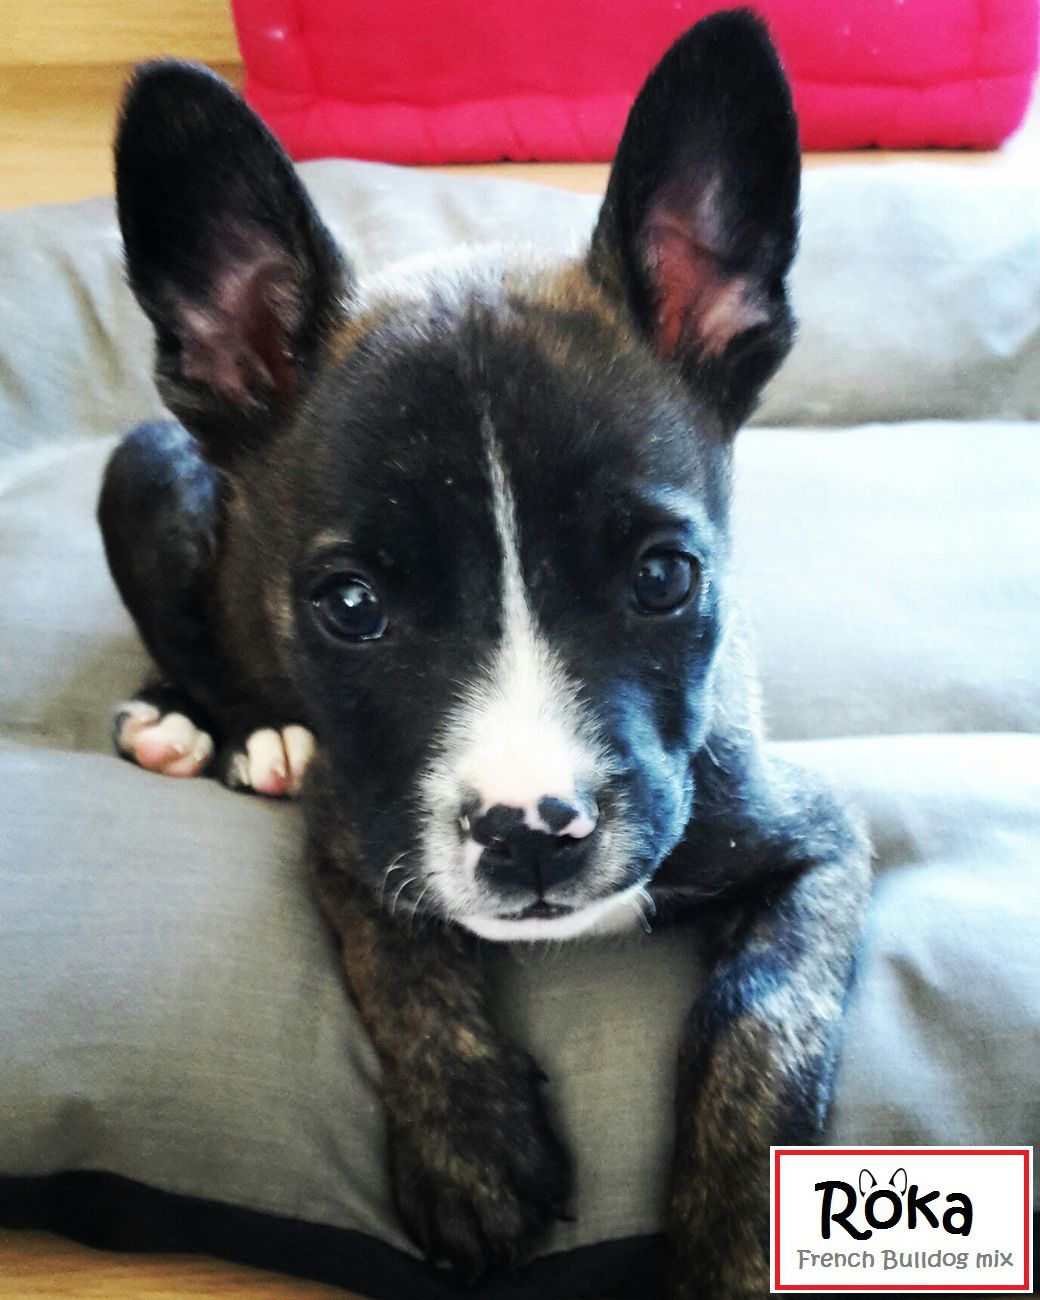 Roka is a french bulldog and jack russell mix (he is 9